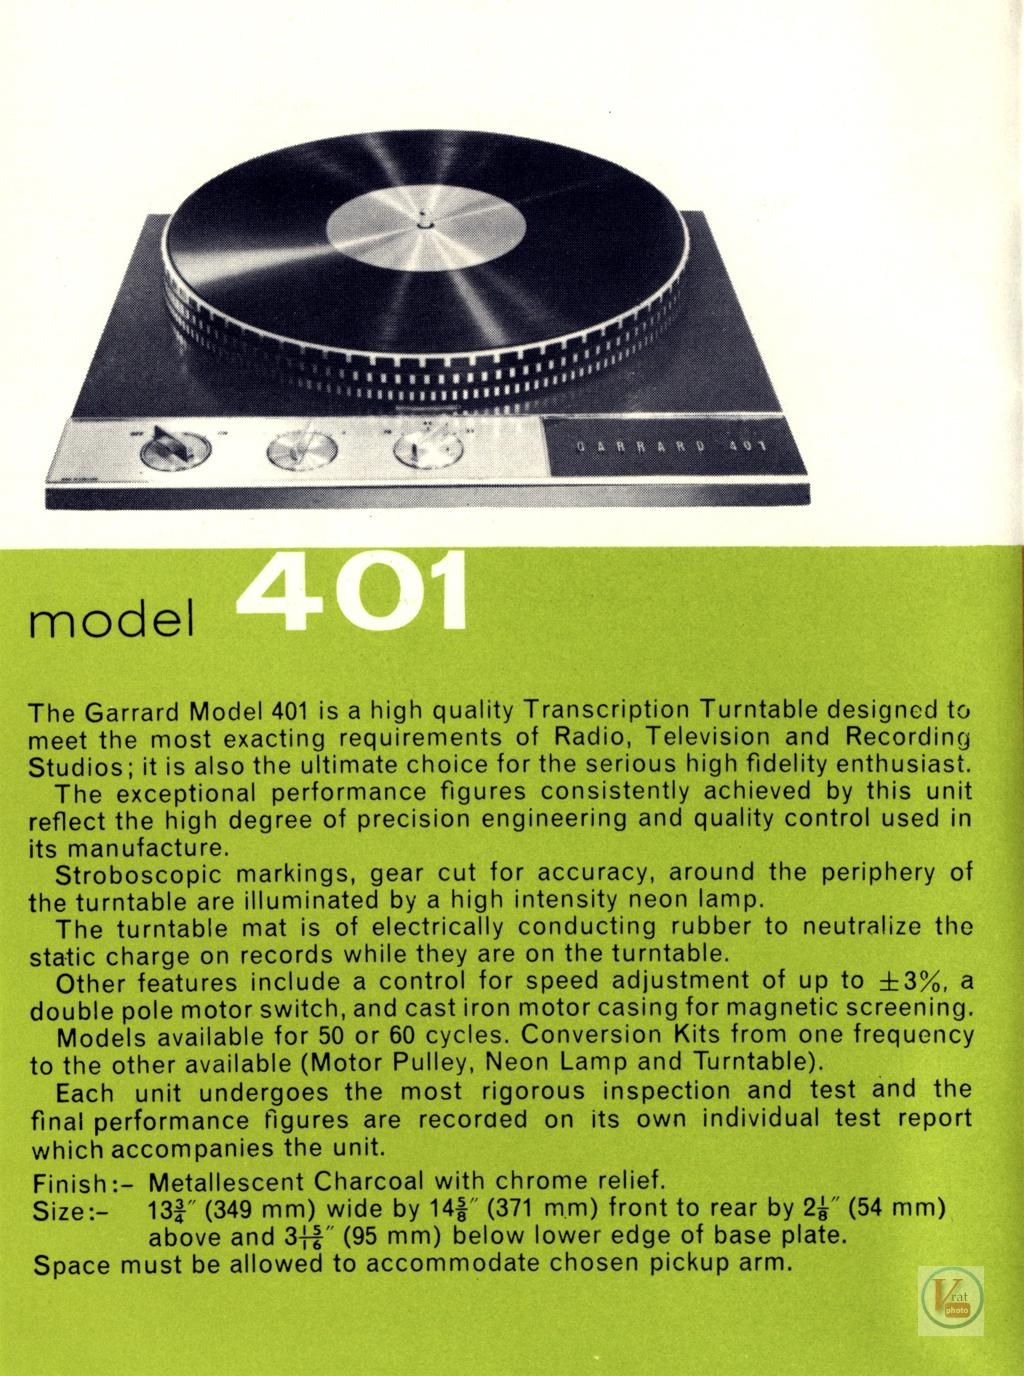 Garrard-401 Turntable 51